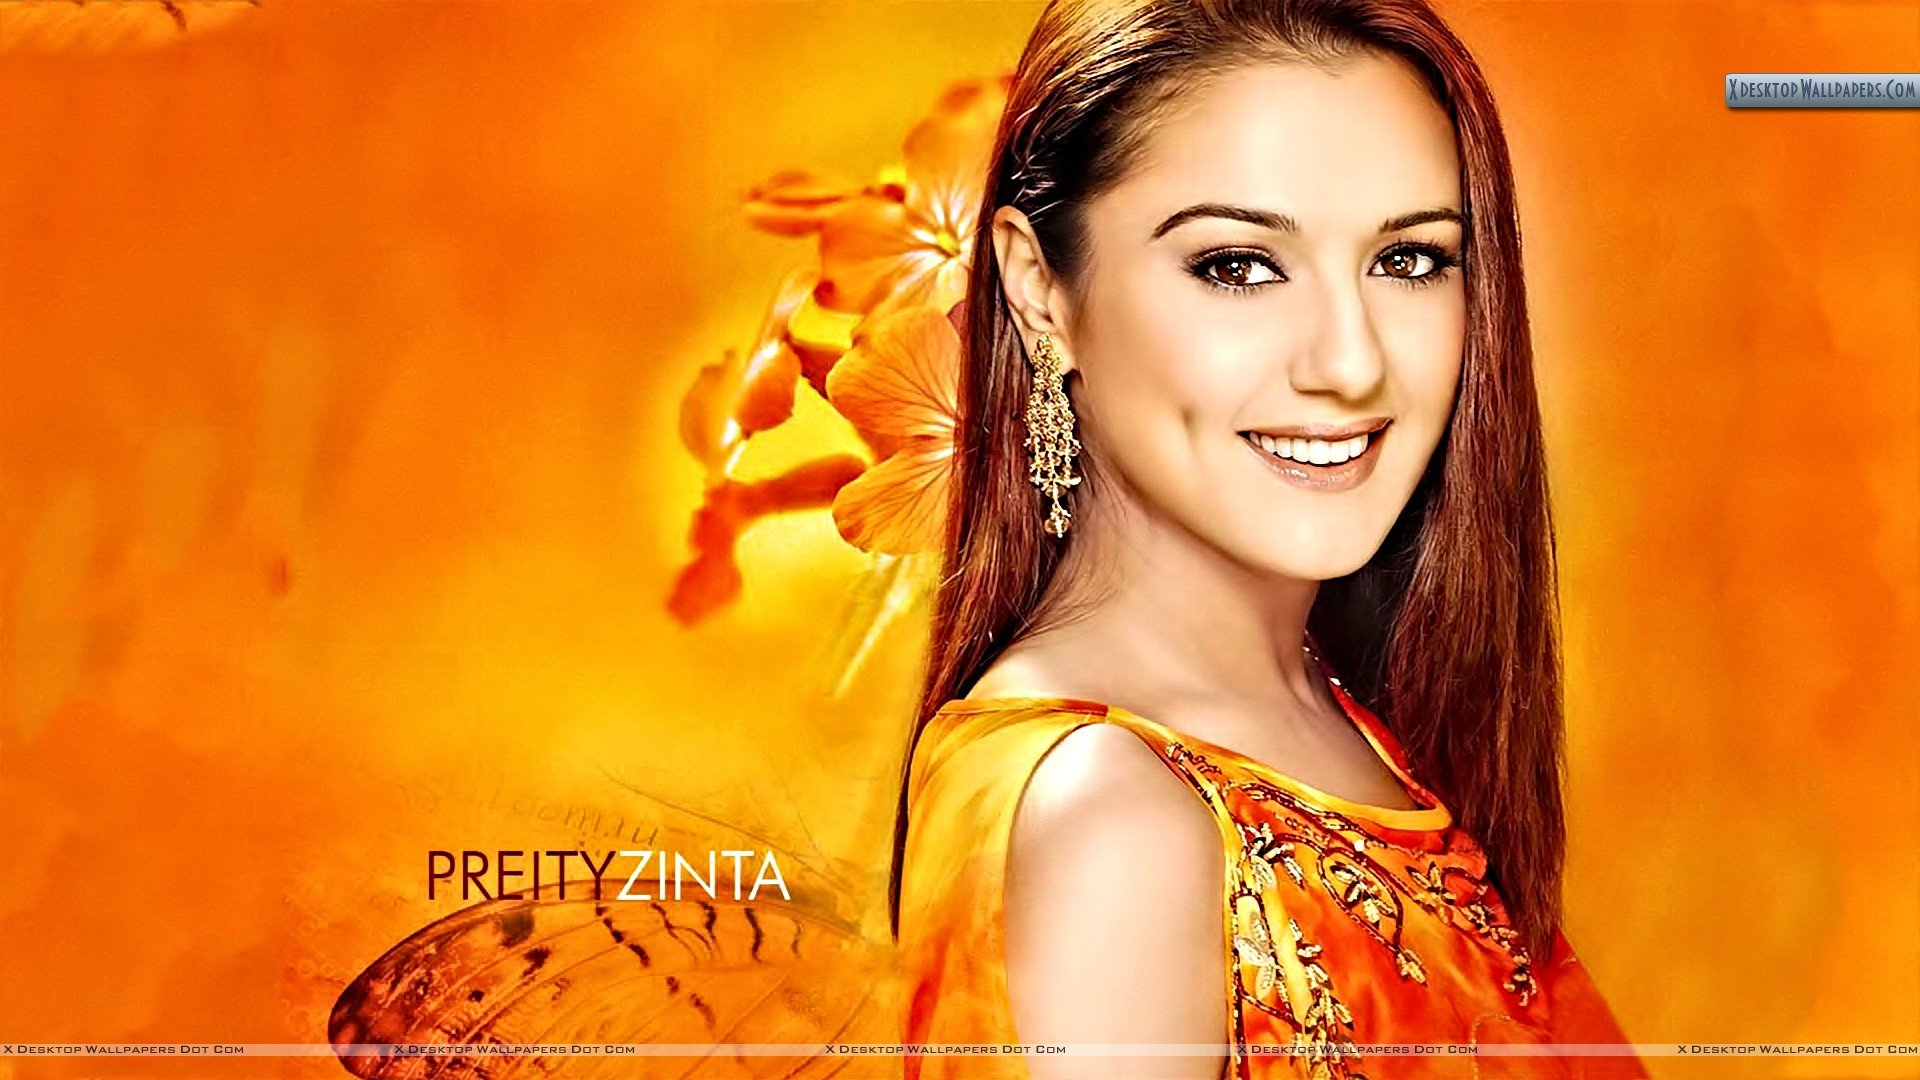 Preity Zinta Wallpapers Photos Images in HD 1920x1080